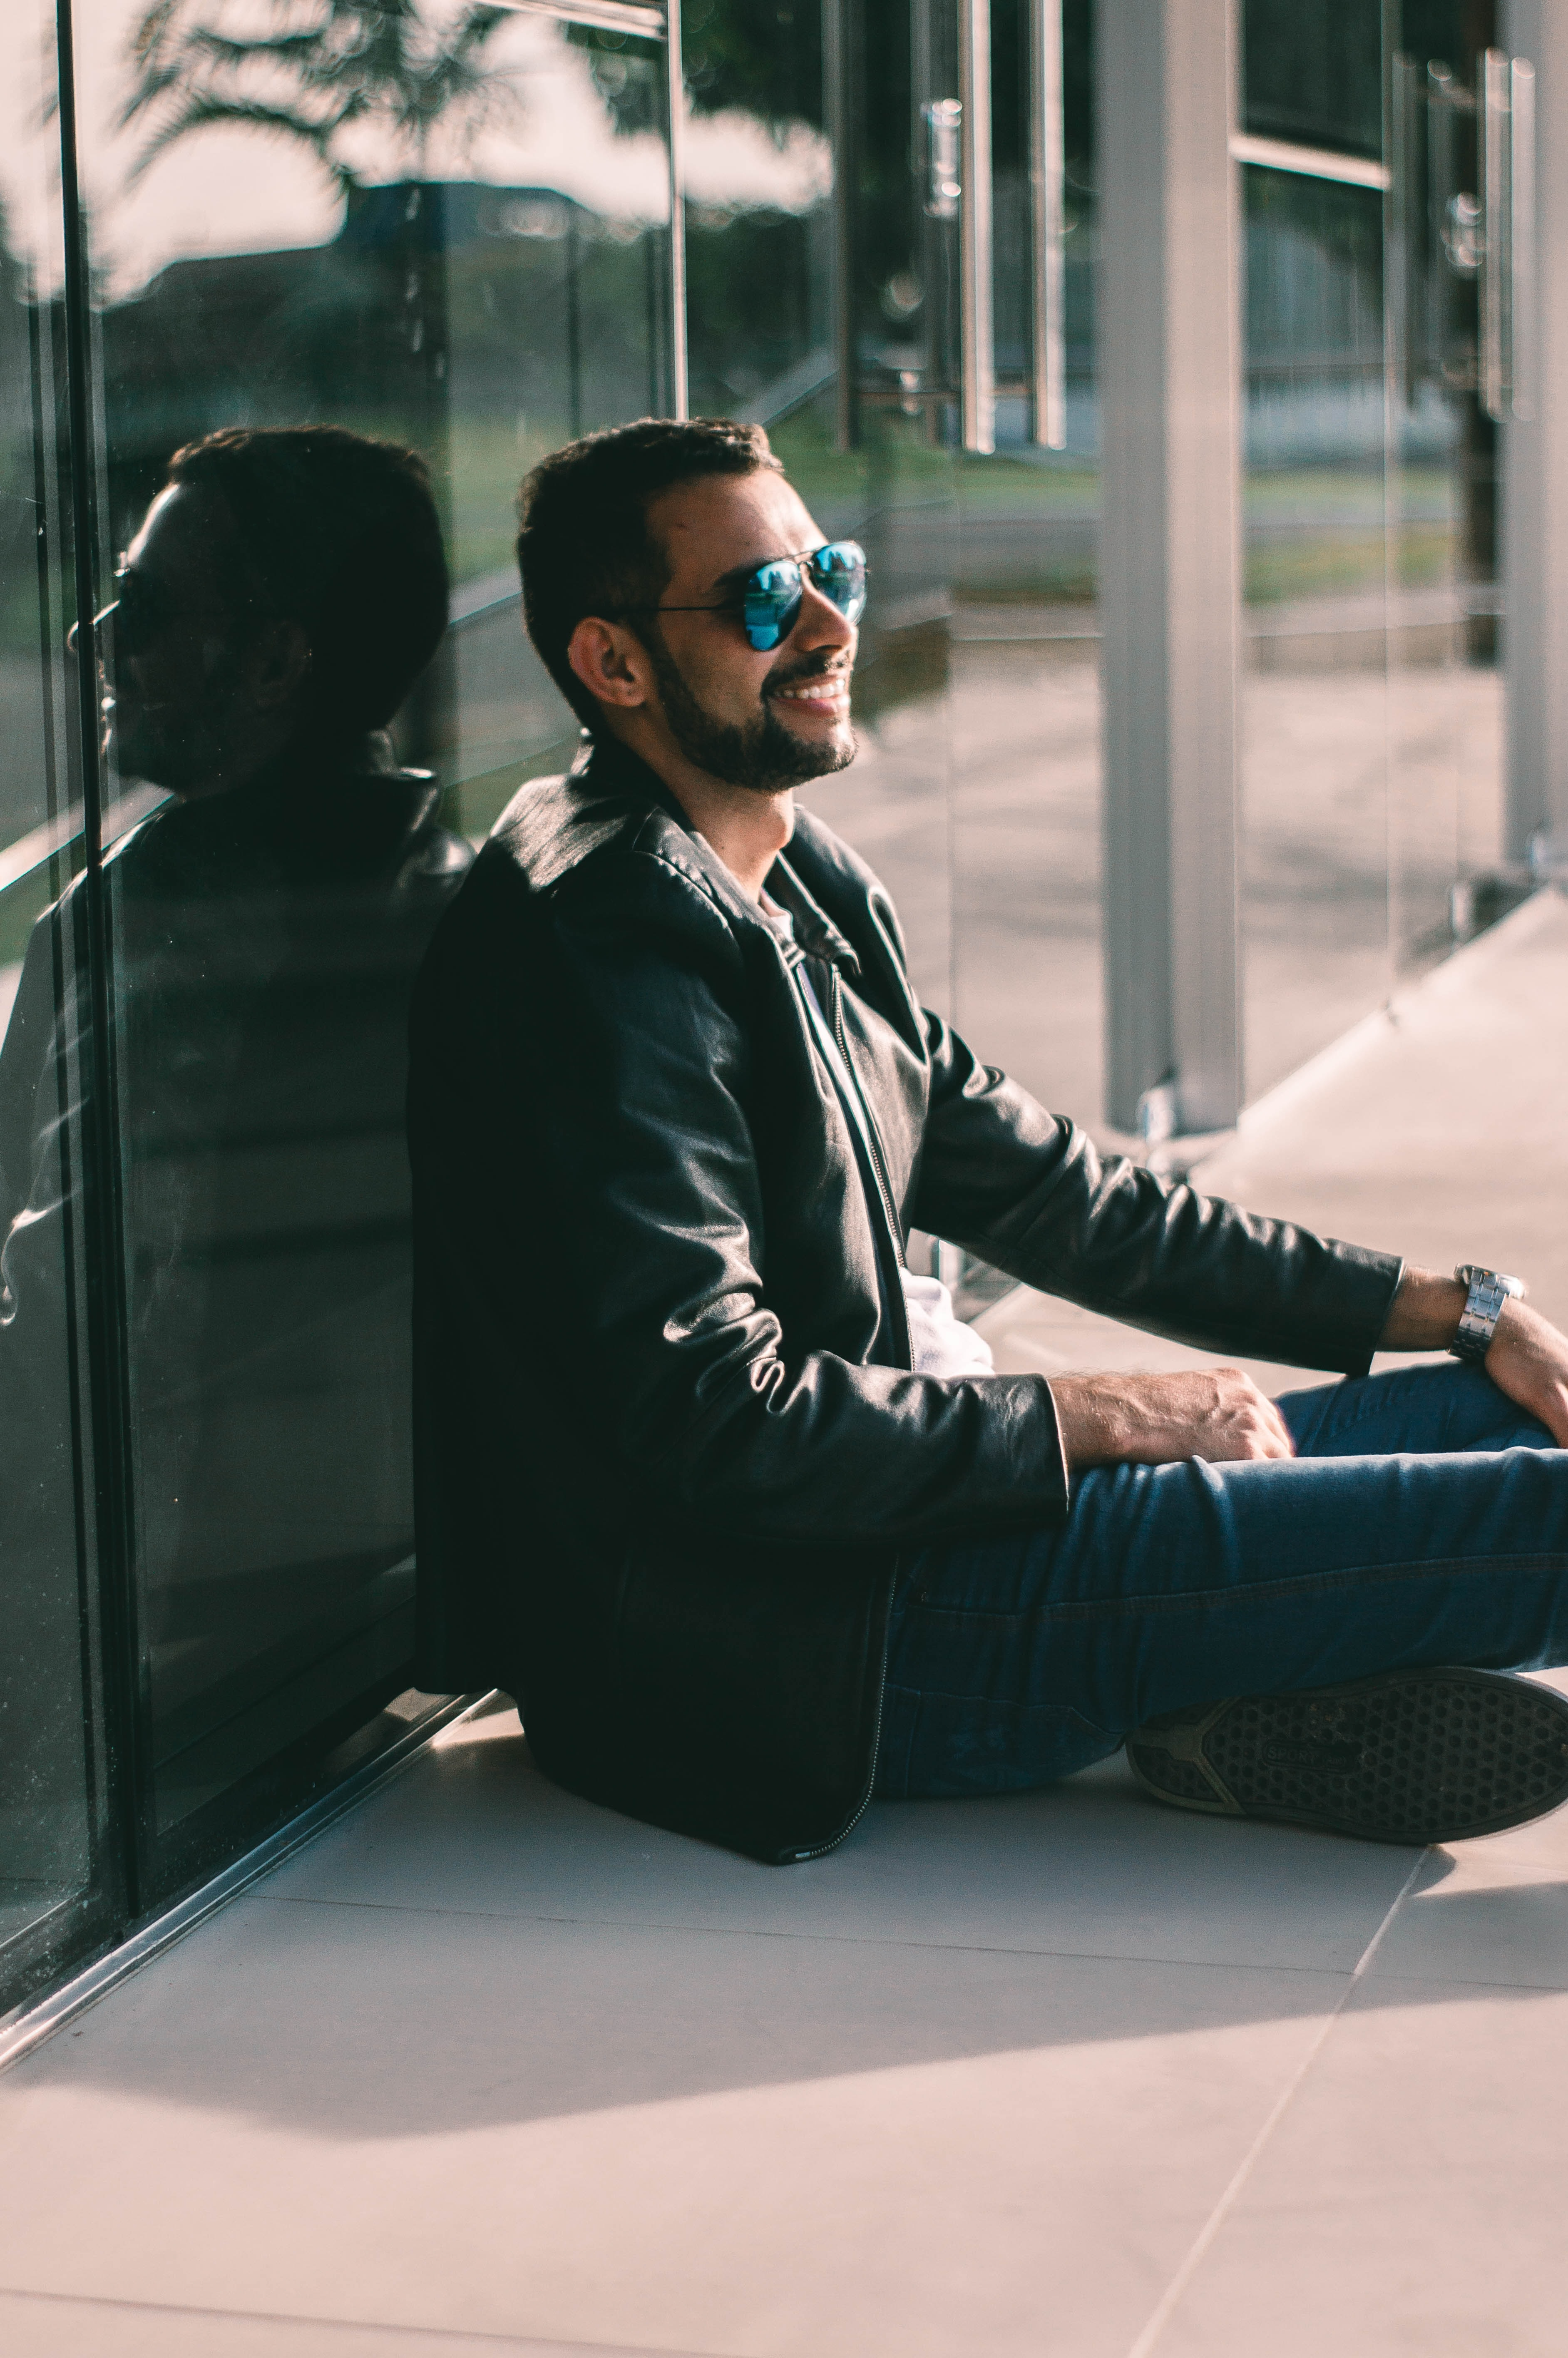 man sitting on floor while leaning on glass wall